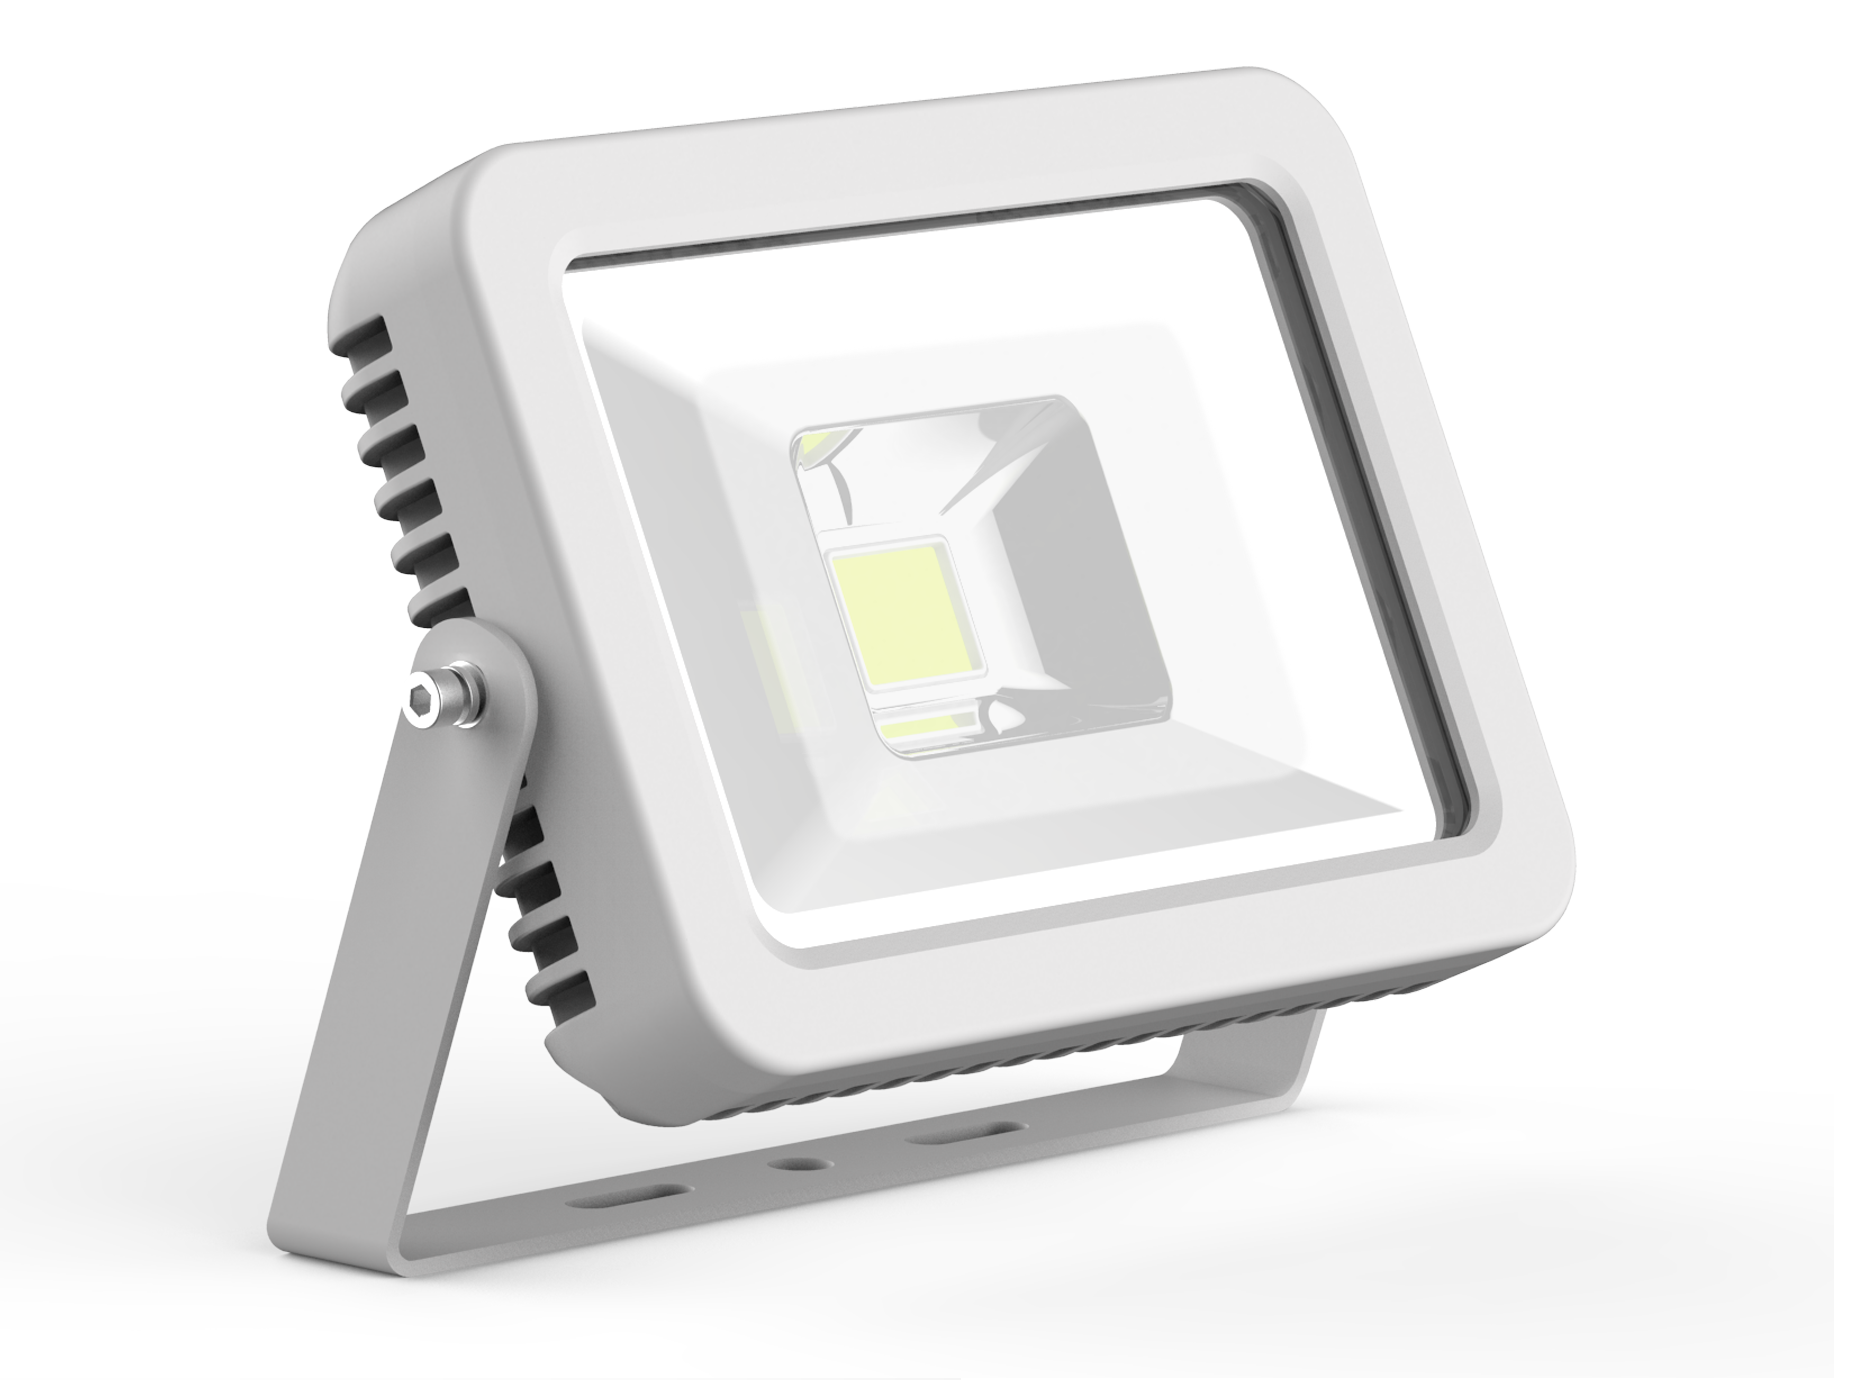 LED DRIVERLESS FLOOD LIGHT - 10W - 5000K - White